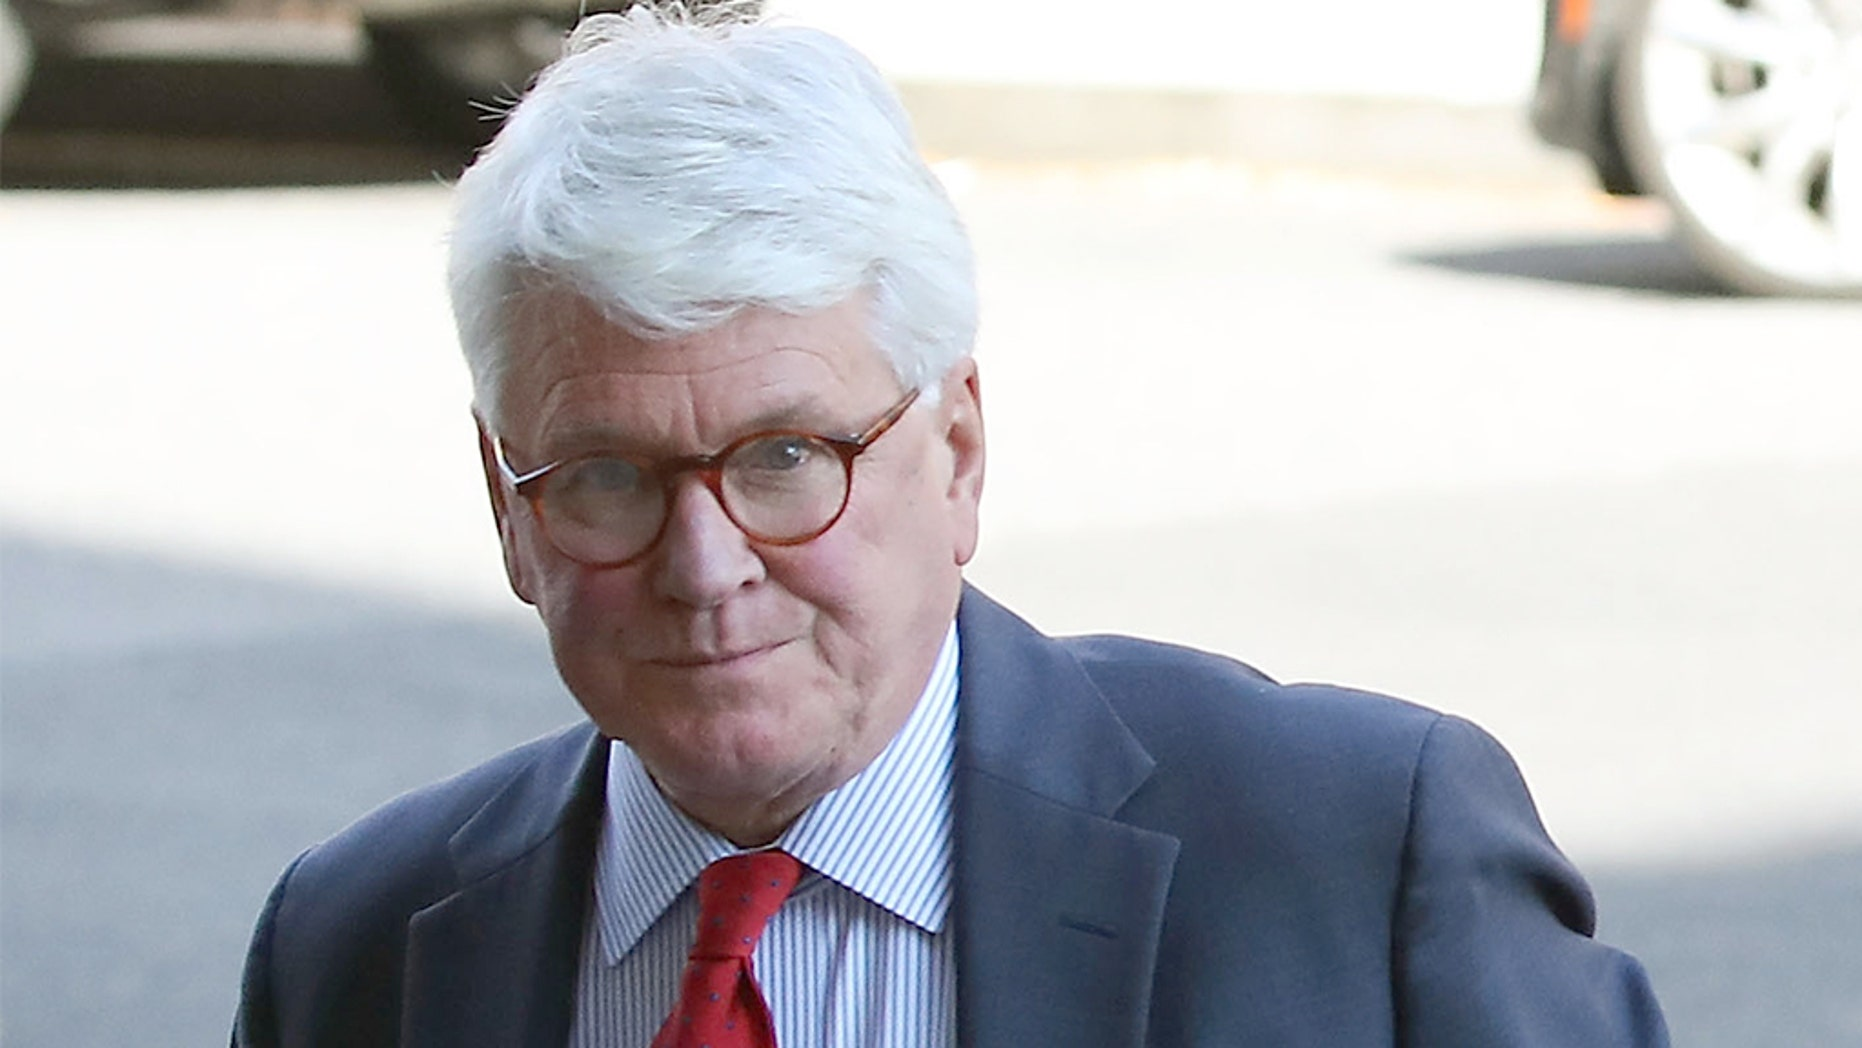 Lawyers: Ex-Obama White House counsel Craig expects charges